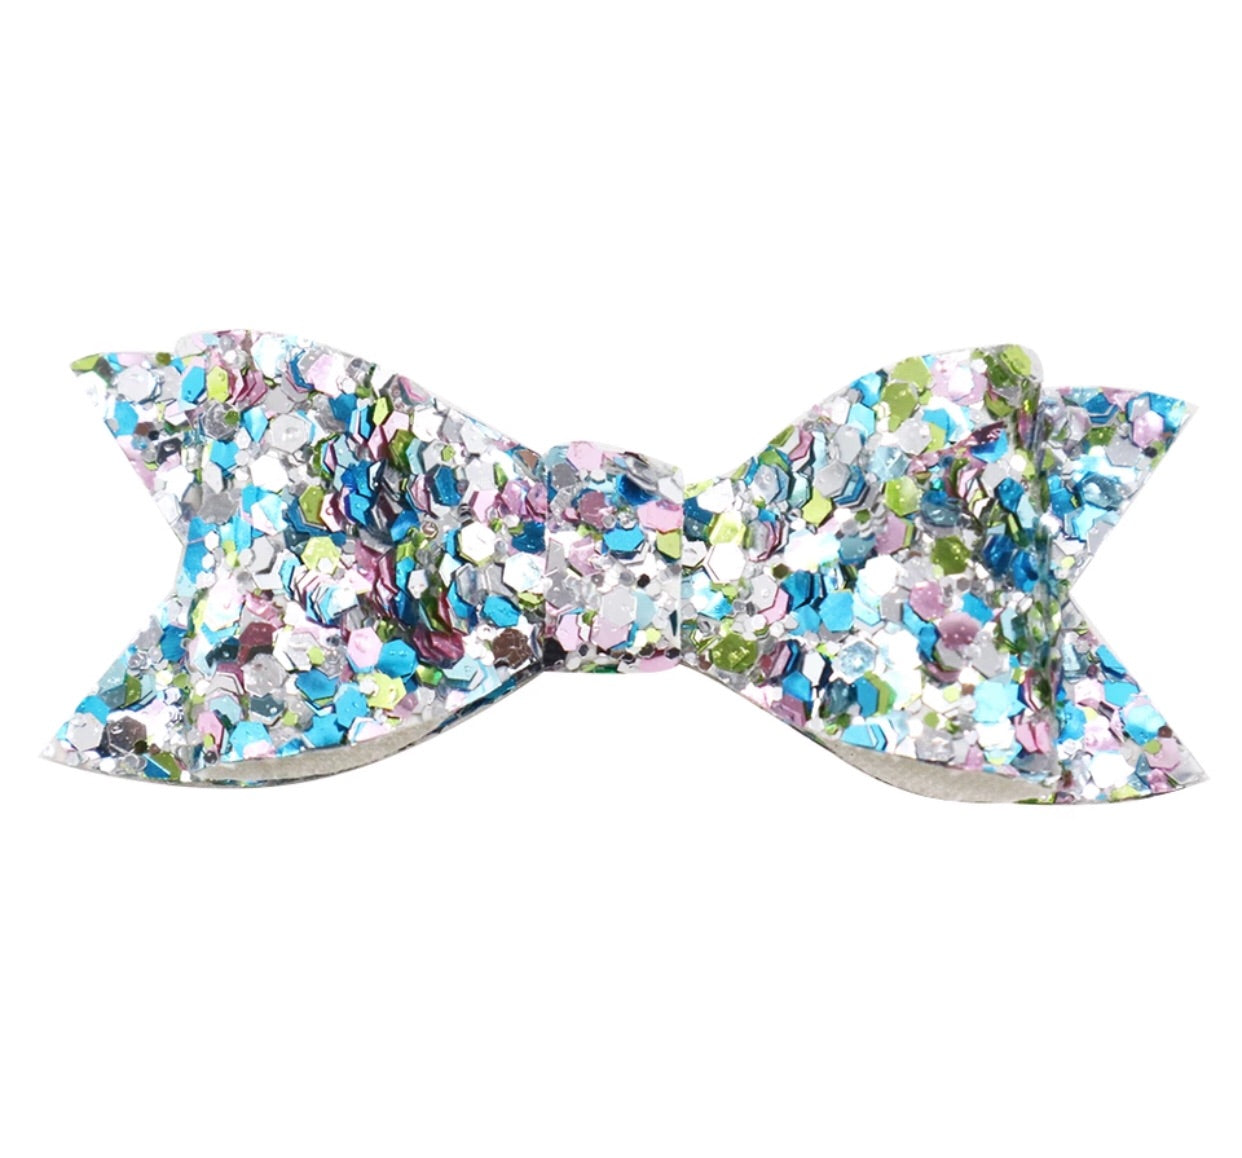 Chunky Glitter Bow - Seashore - shabbyflowers.com